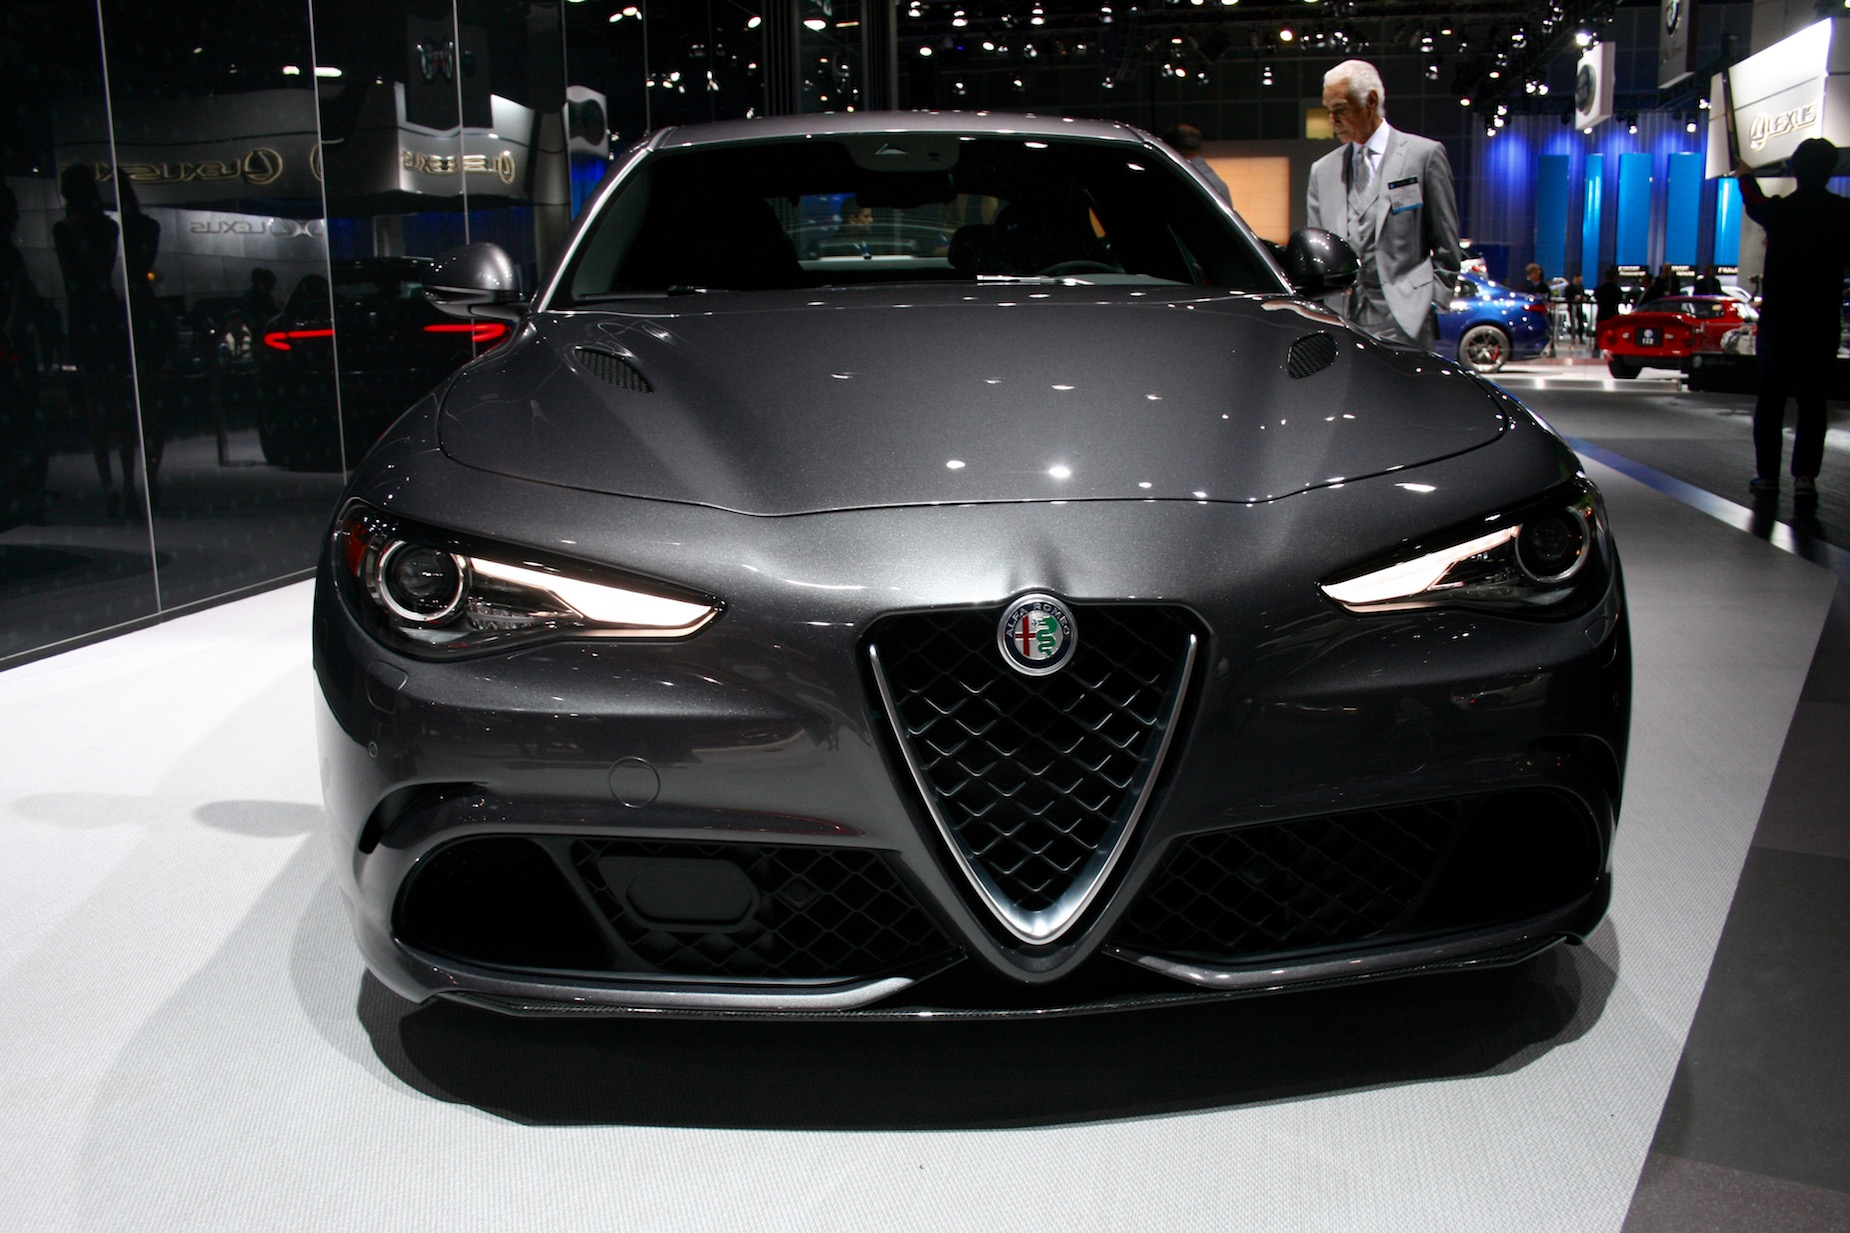 2018 Alfa Romeo Giulia Prices Incentives amp Dealers  TrueCar